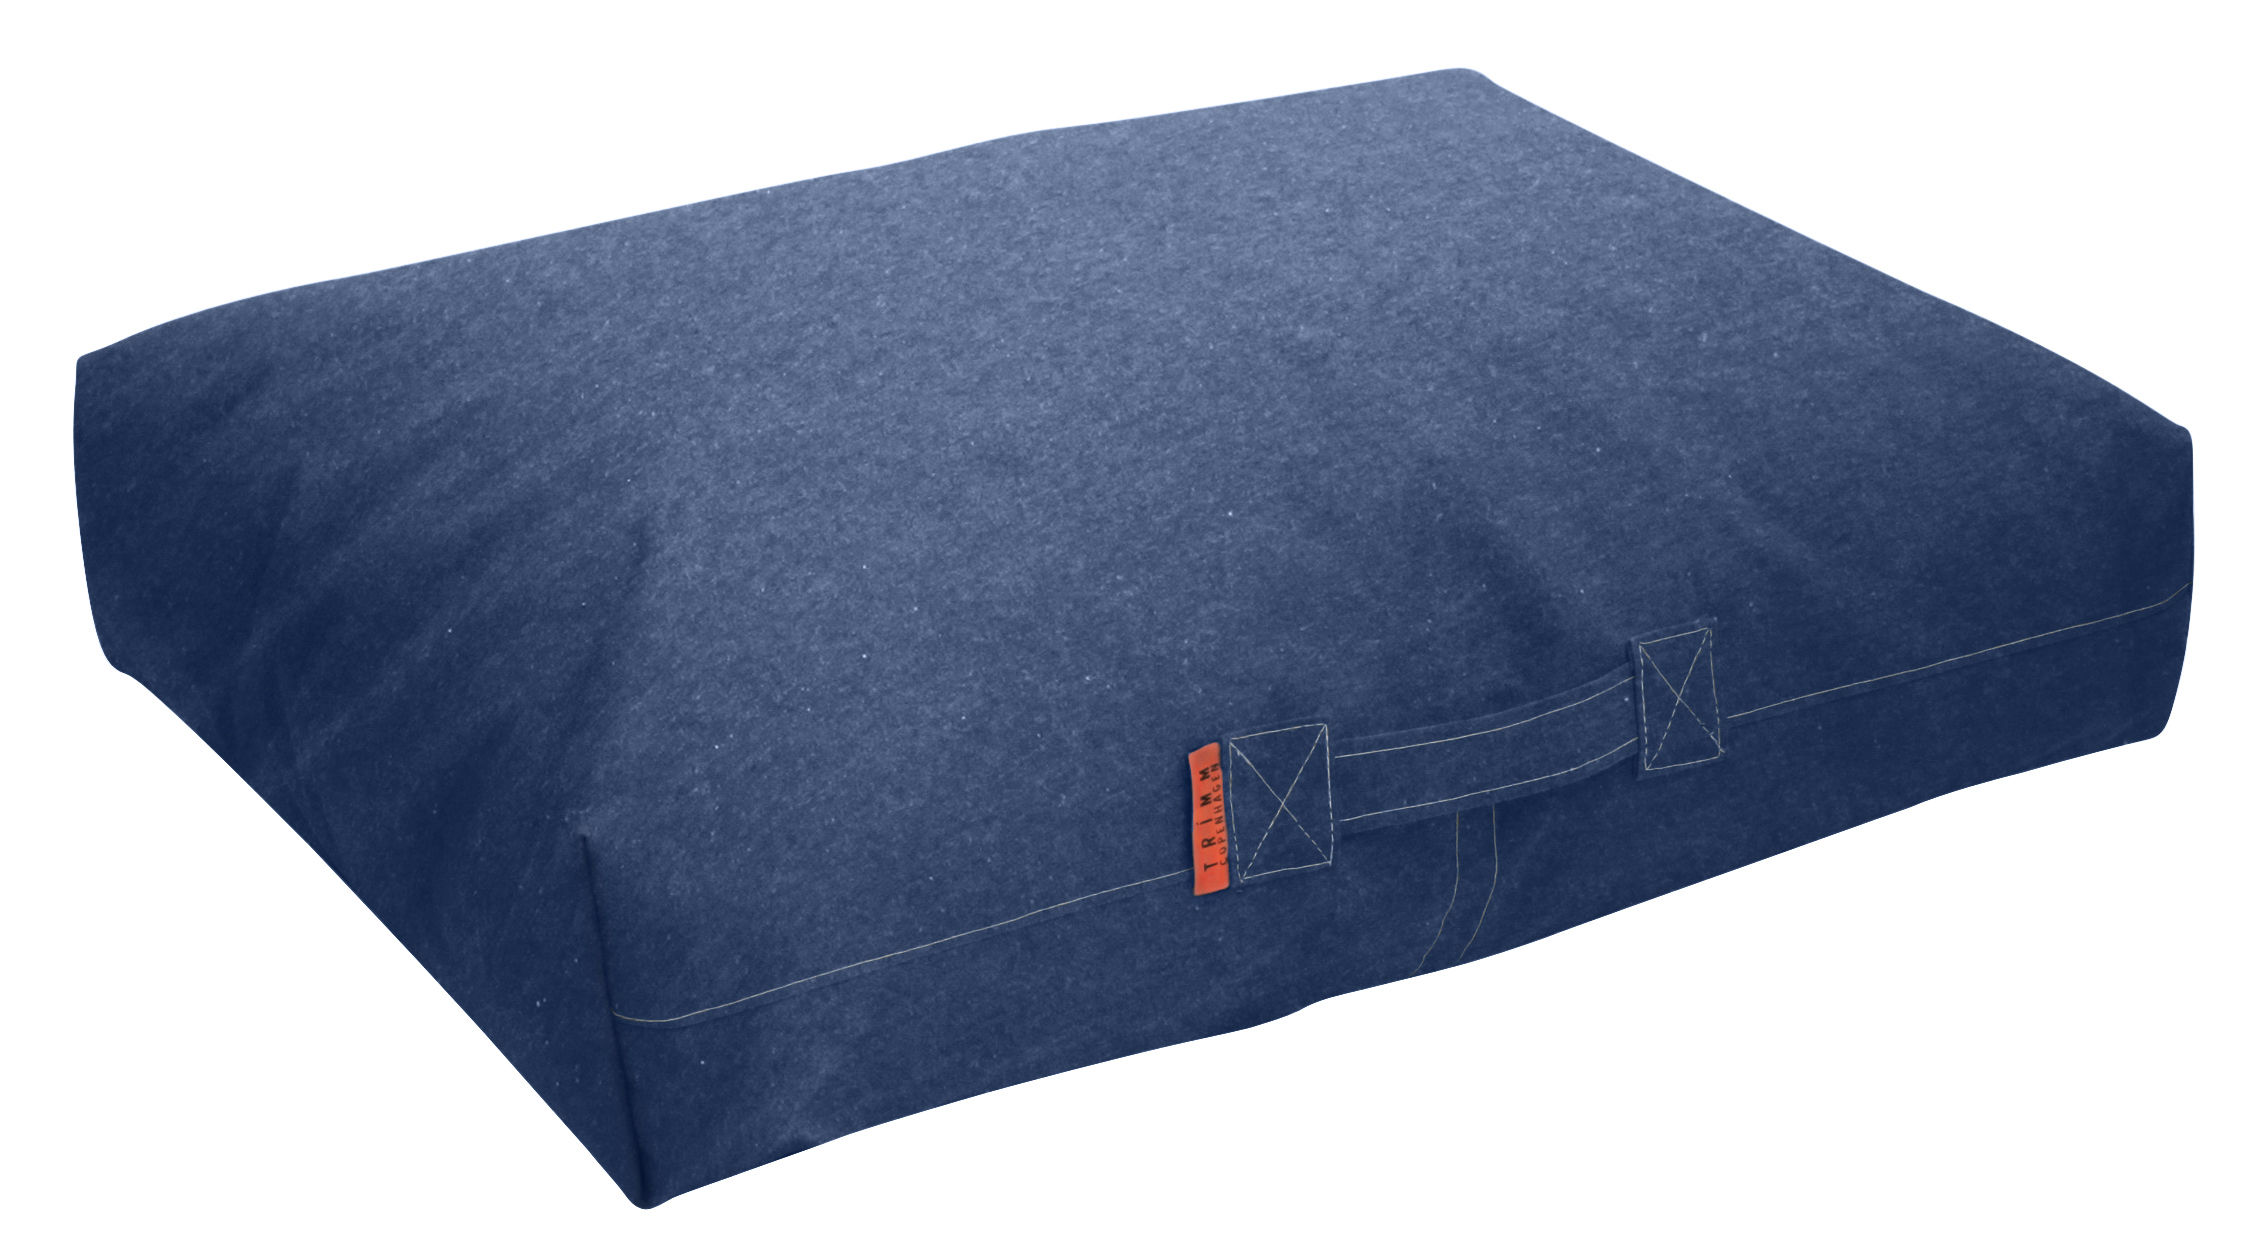 coussin de sol felix outdoor 80 x 56 cm bleu trimm copenhagen. Black Bedroom Furniture Sets. Home Design Ideas